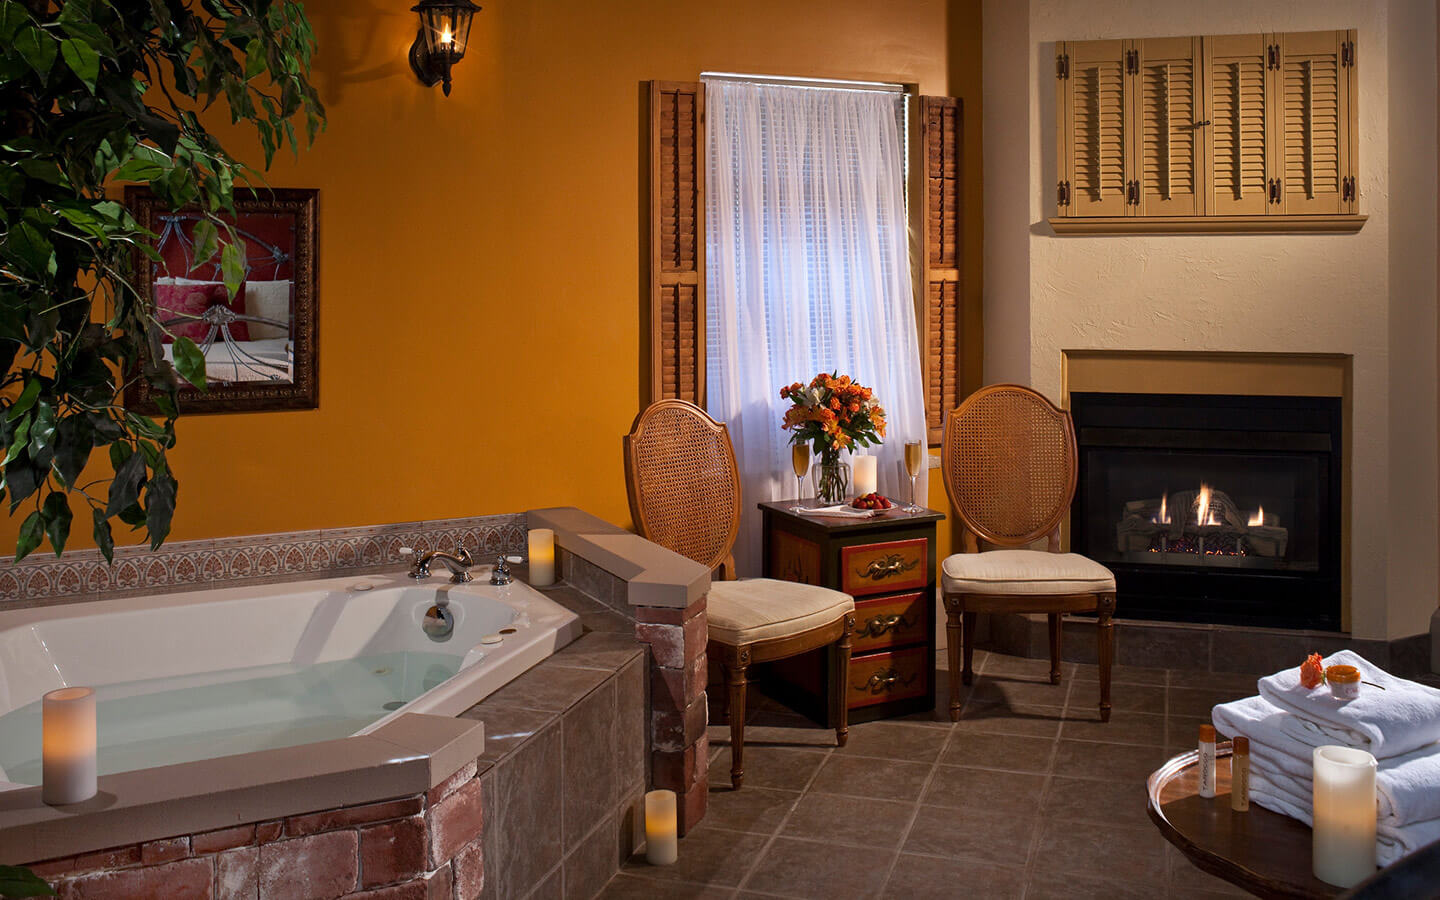 Romeo and Juliet Suite Whirlpool tub, side table, and fireplace